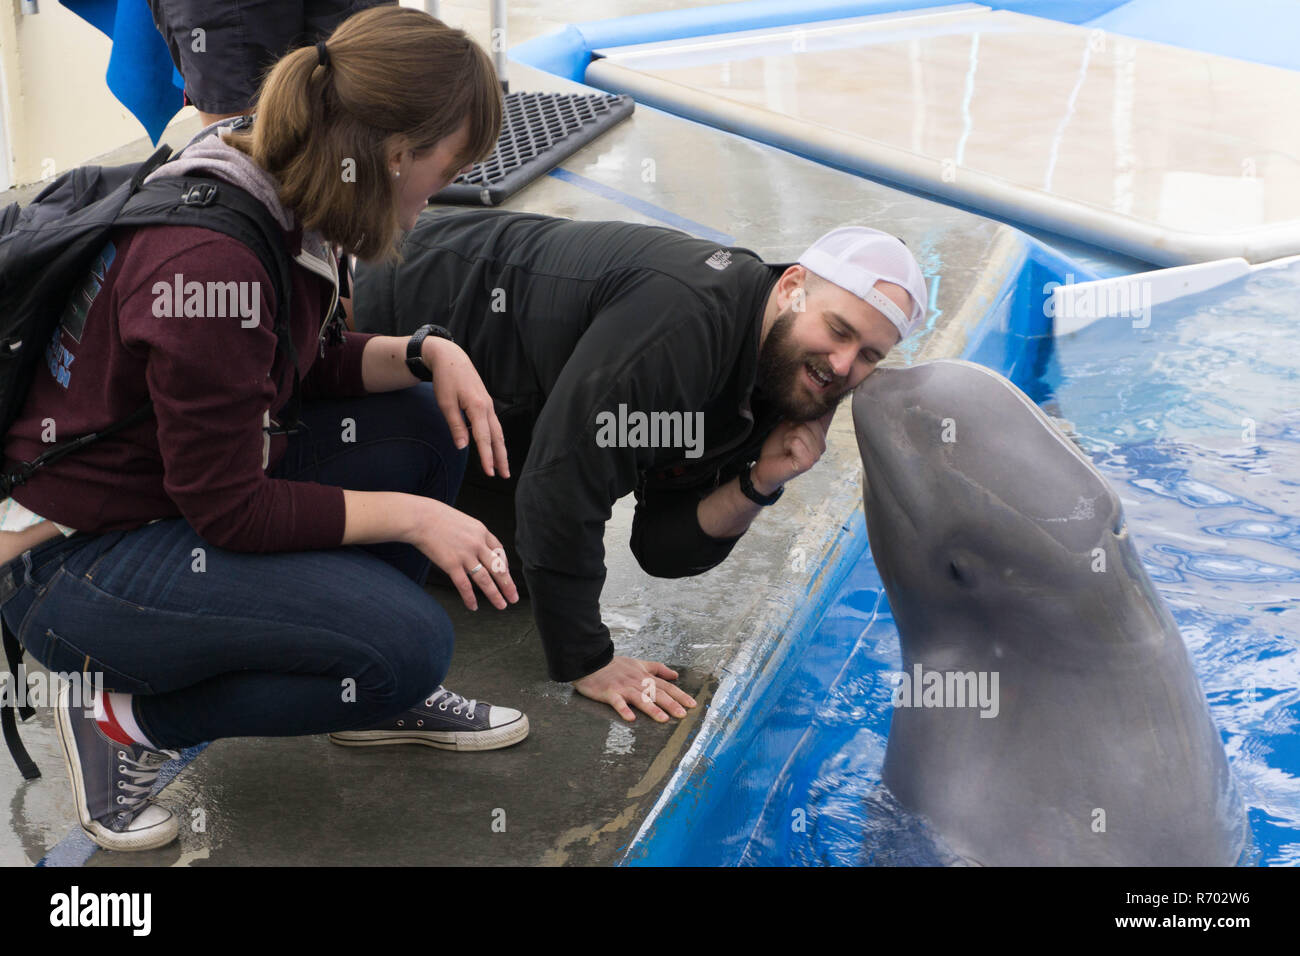 Getting kissed by a whale at Seaworld in San Diego - Stock Image